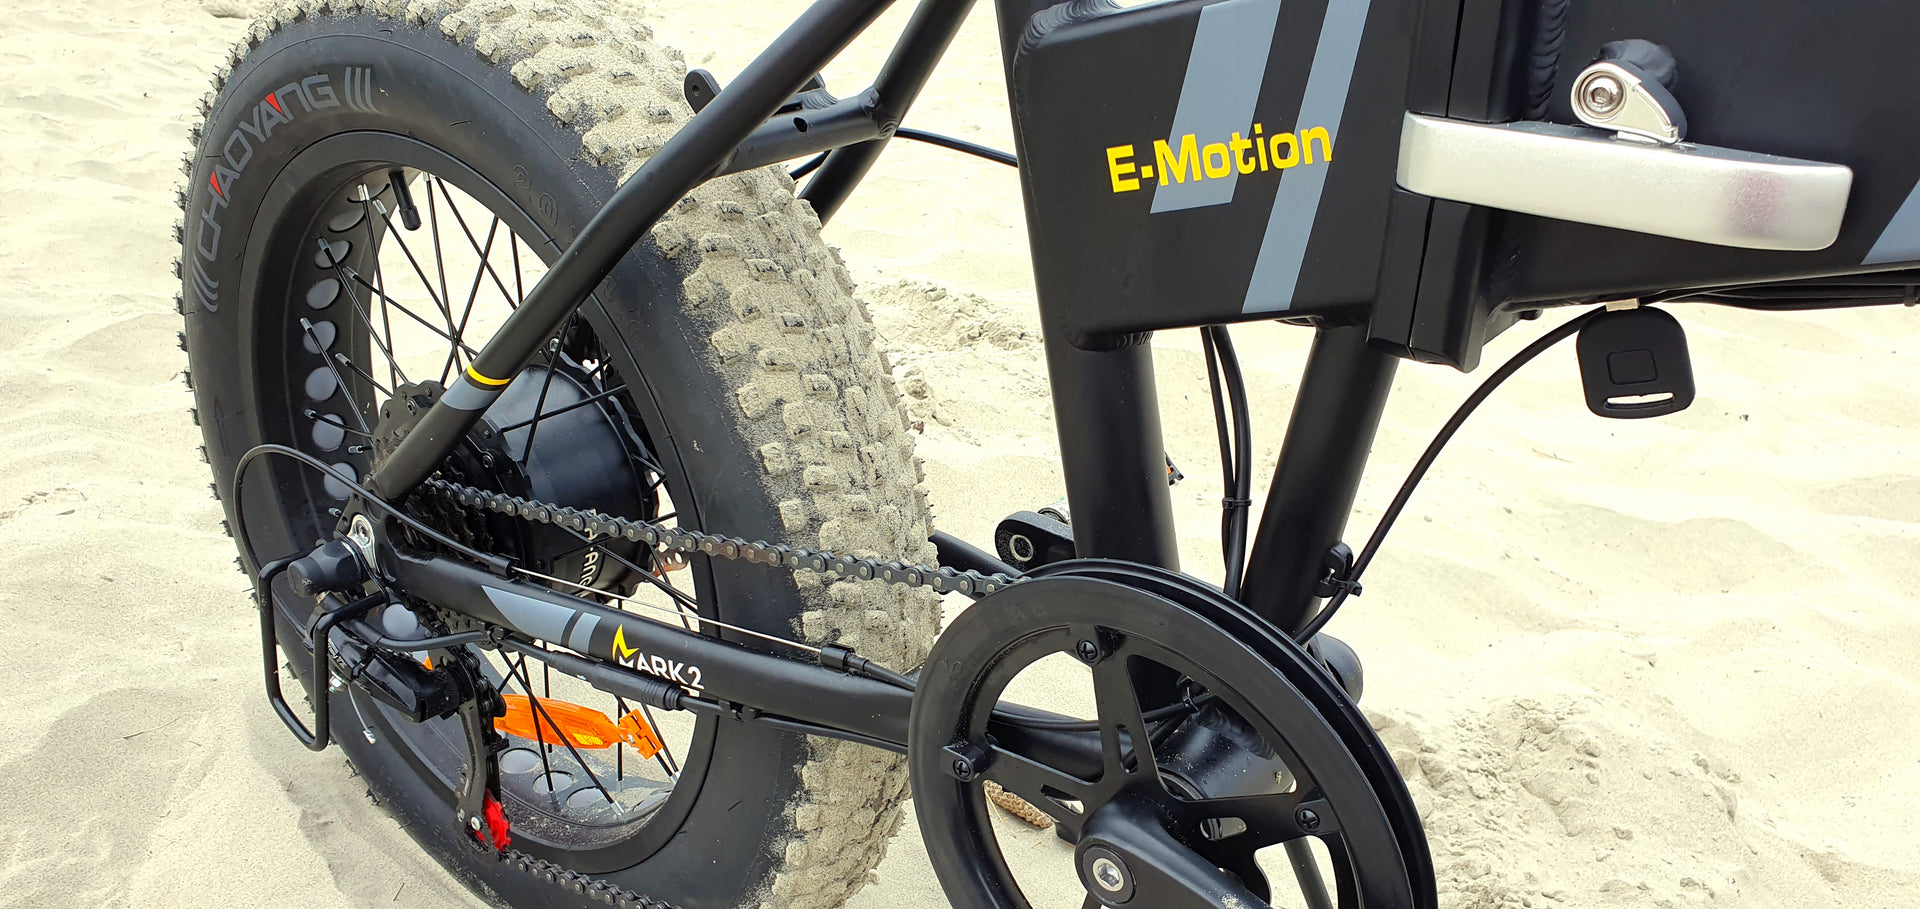 E-Motion Cruiser Electric Bike Story